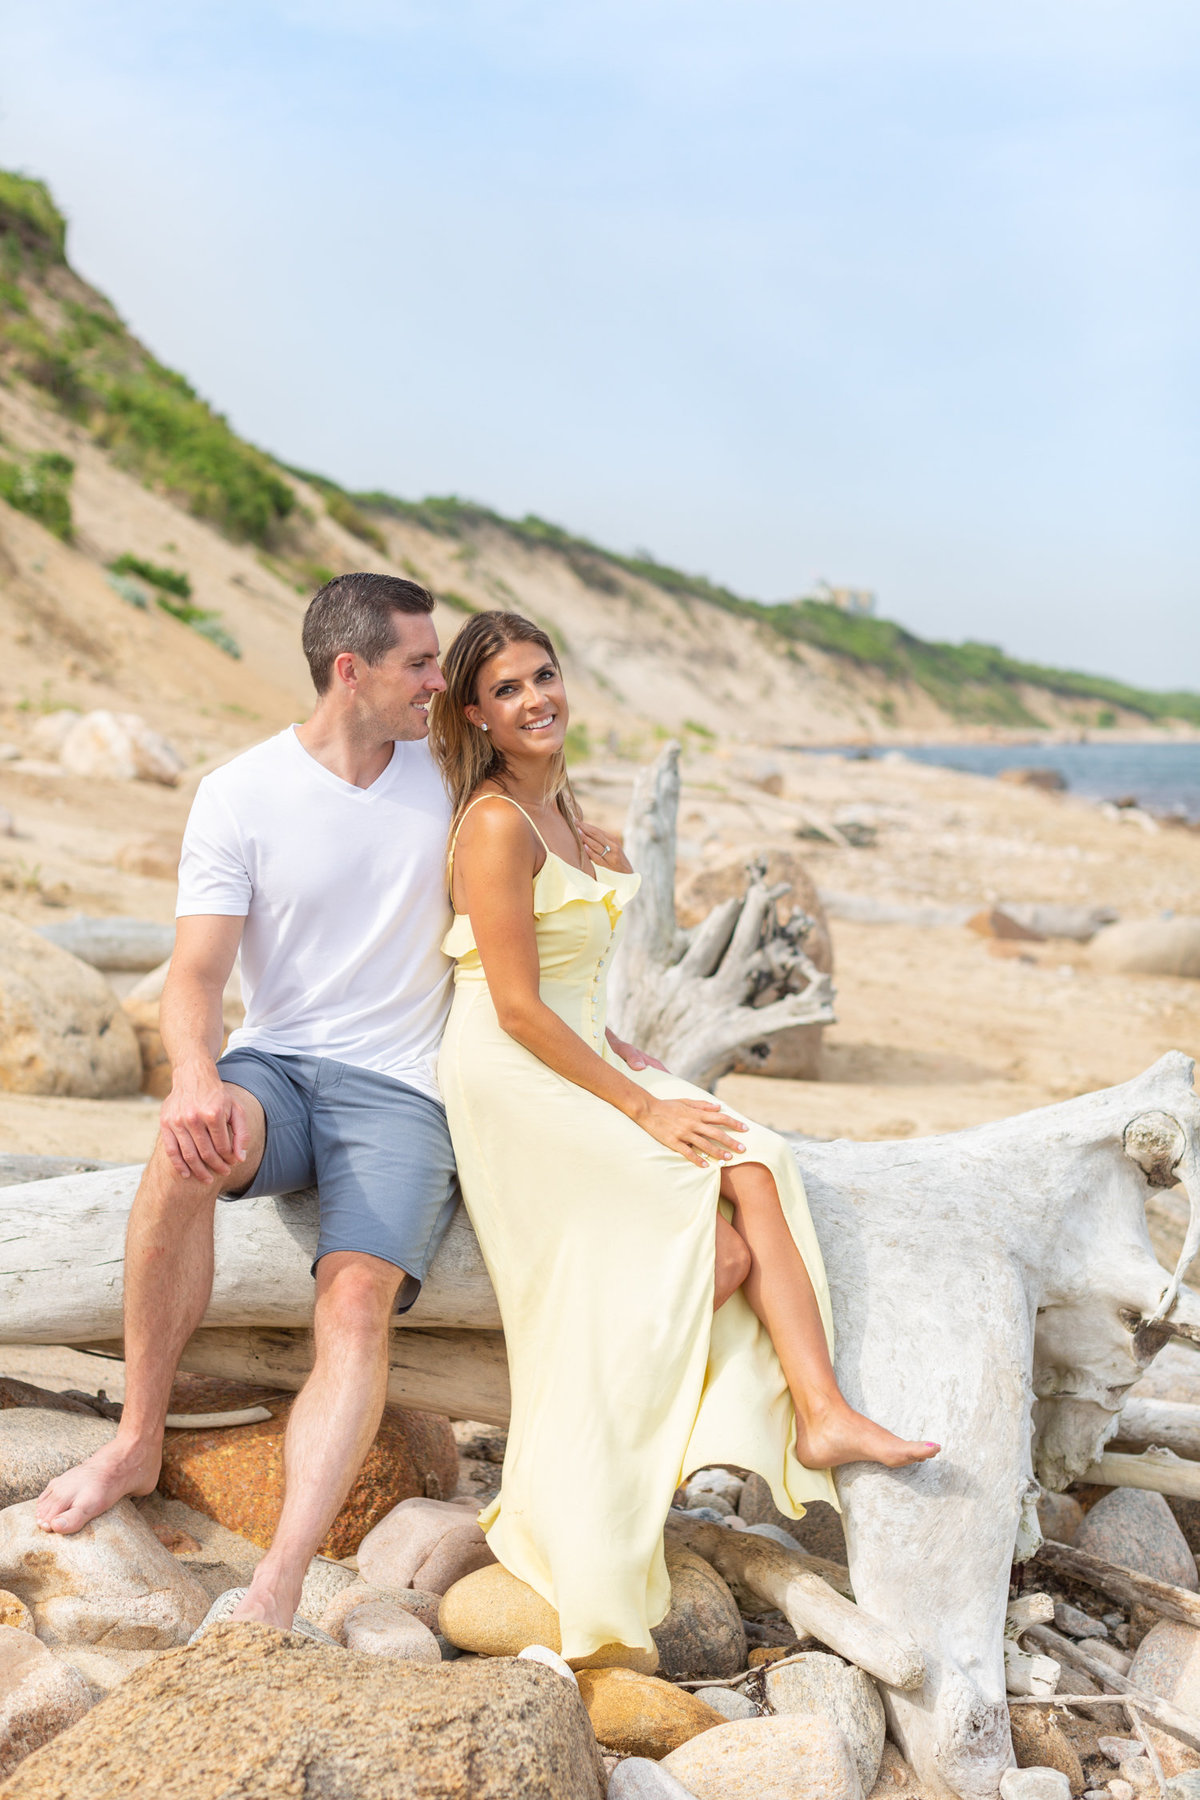 Laura-Klacik-Photography-Engagement-Photos-54-2